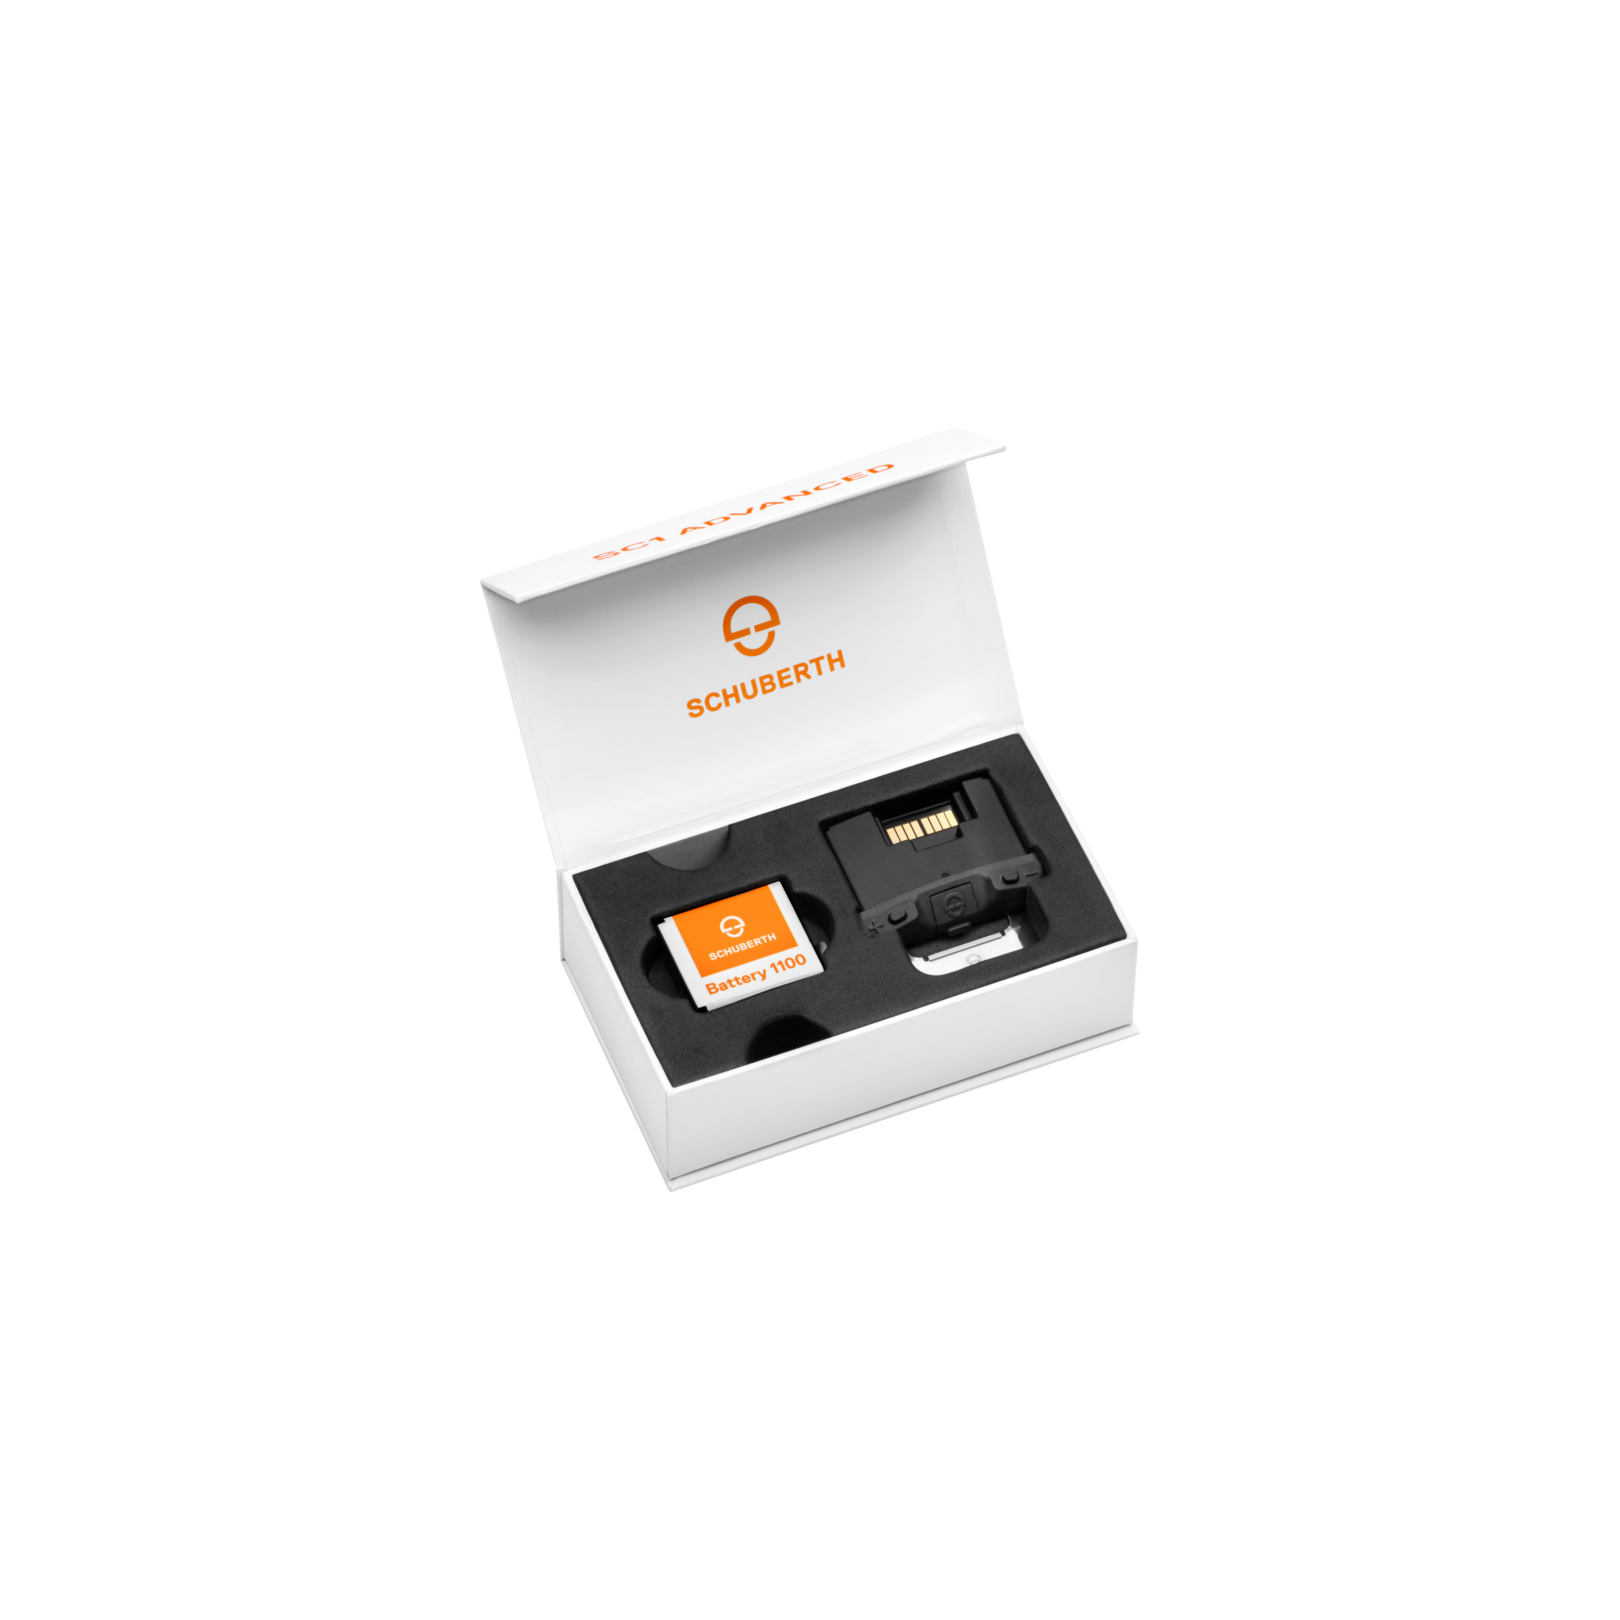 Kit mains libres Schuberth SC1 Advanced